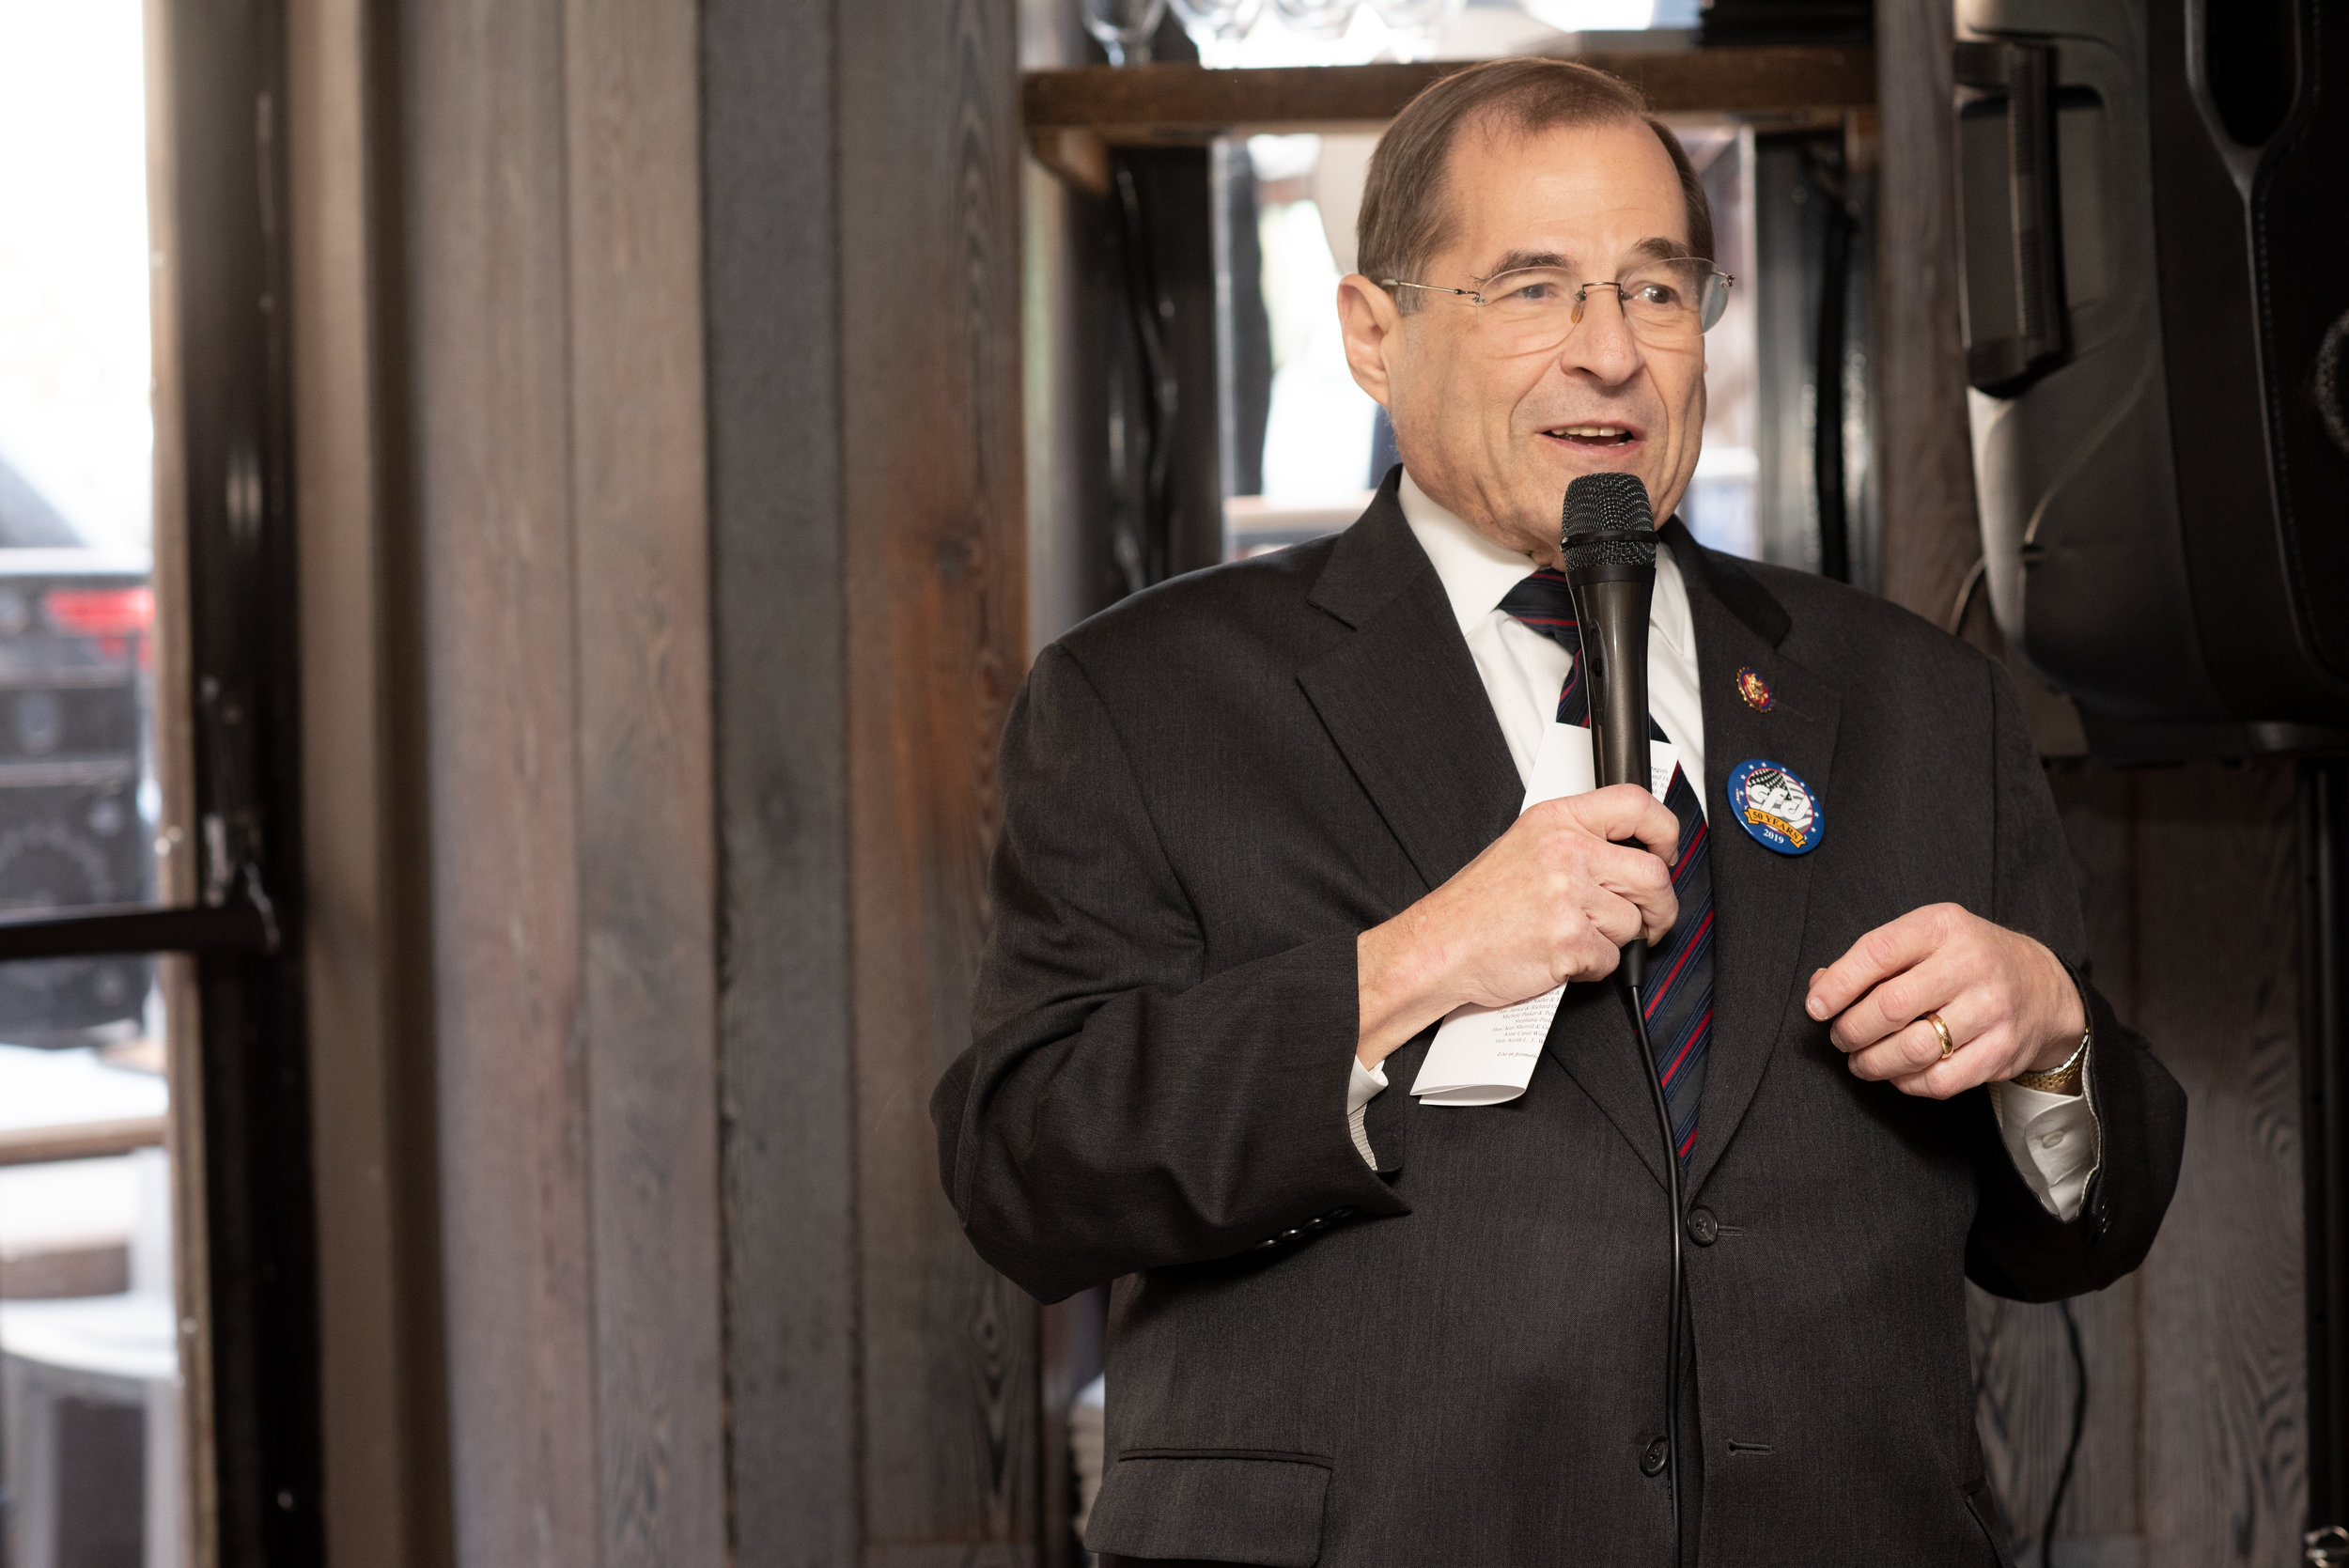 Get to Know Elected Officials - Jerry Nadler, Scott Stringer and Linda B. Rosenthal began their public service at CFD.